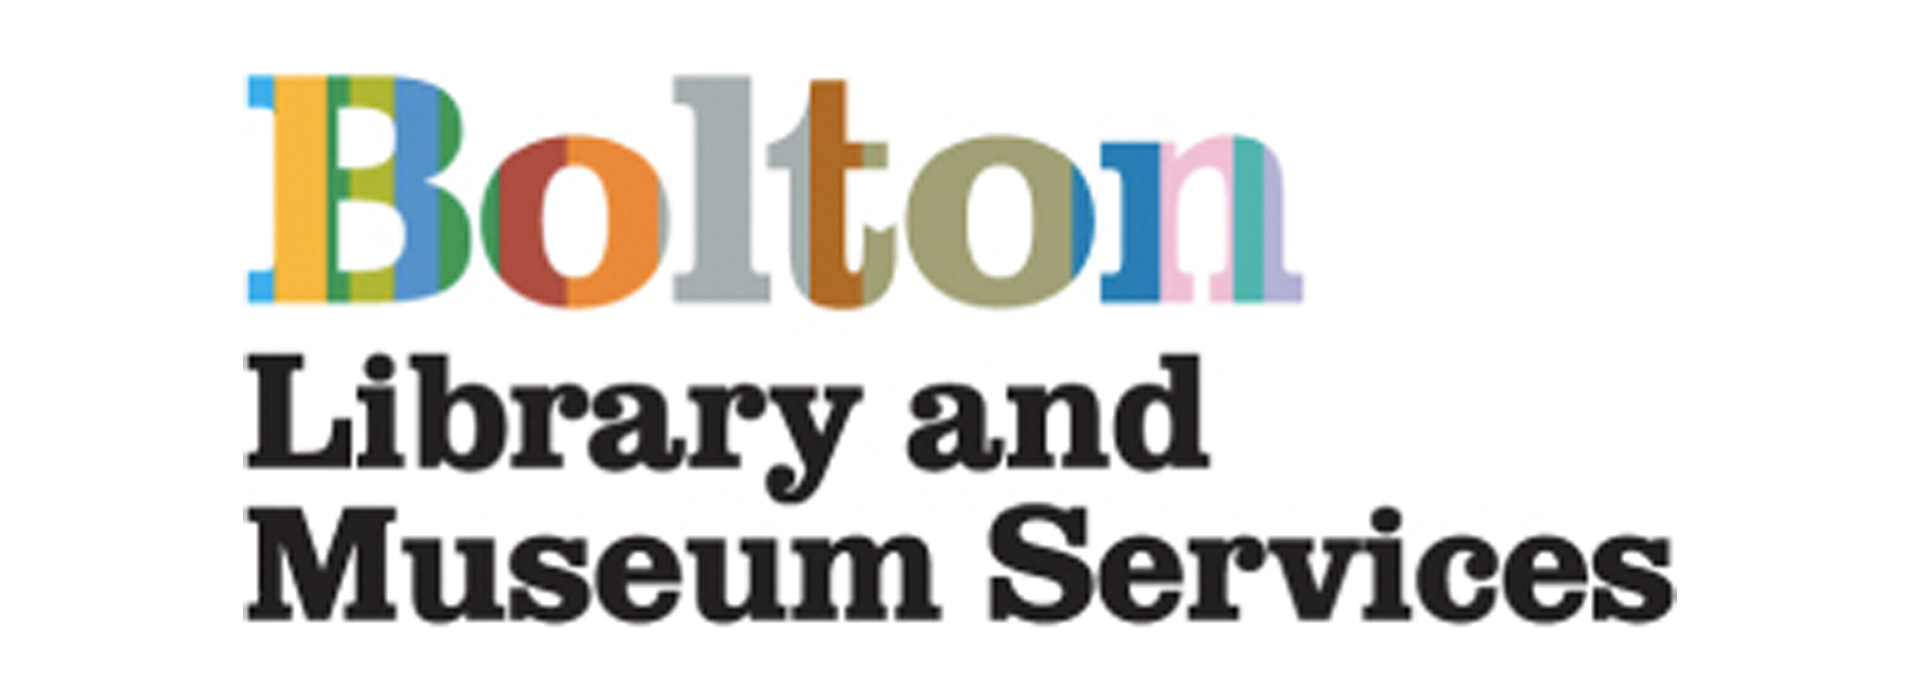 Bolton Library and Museums Service